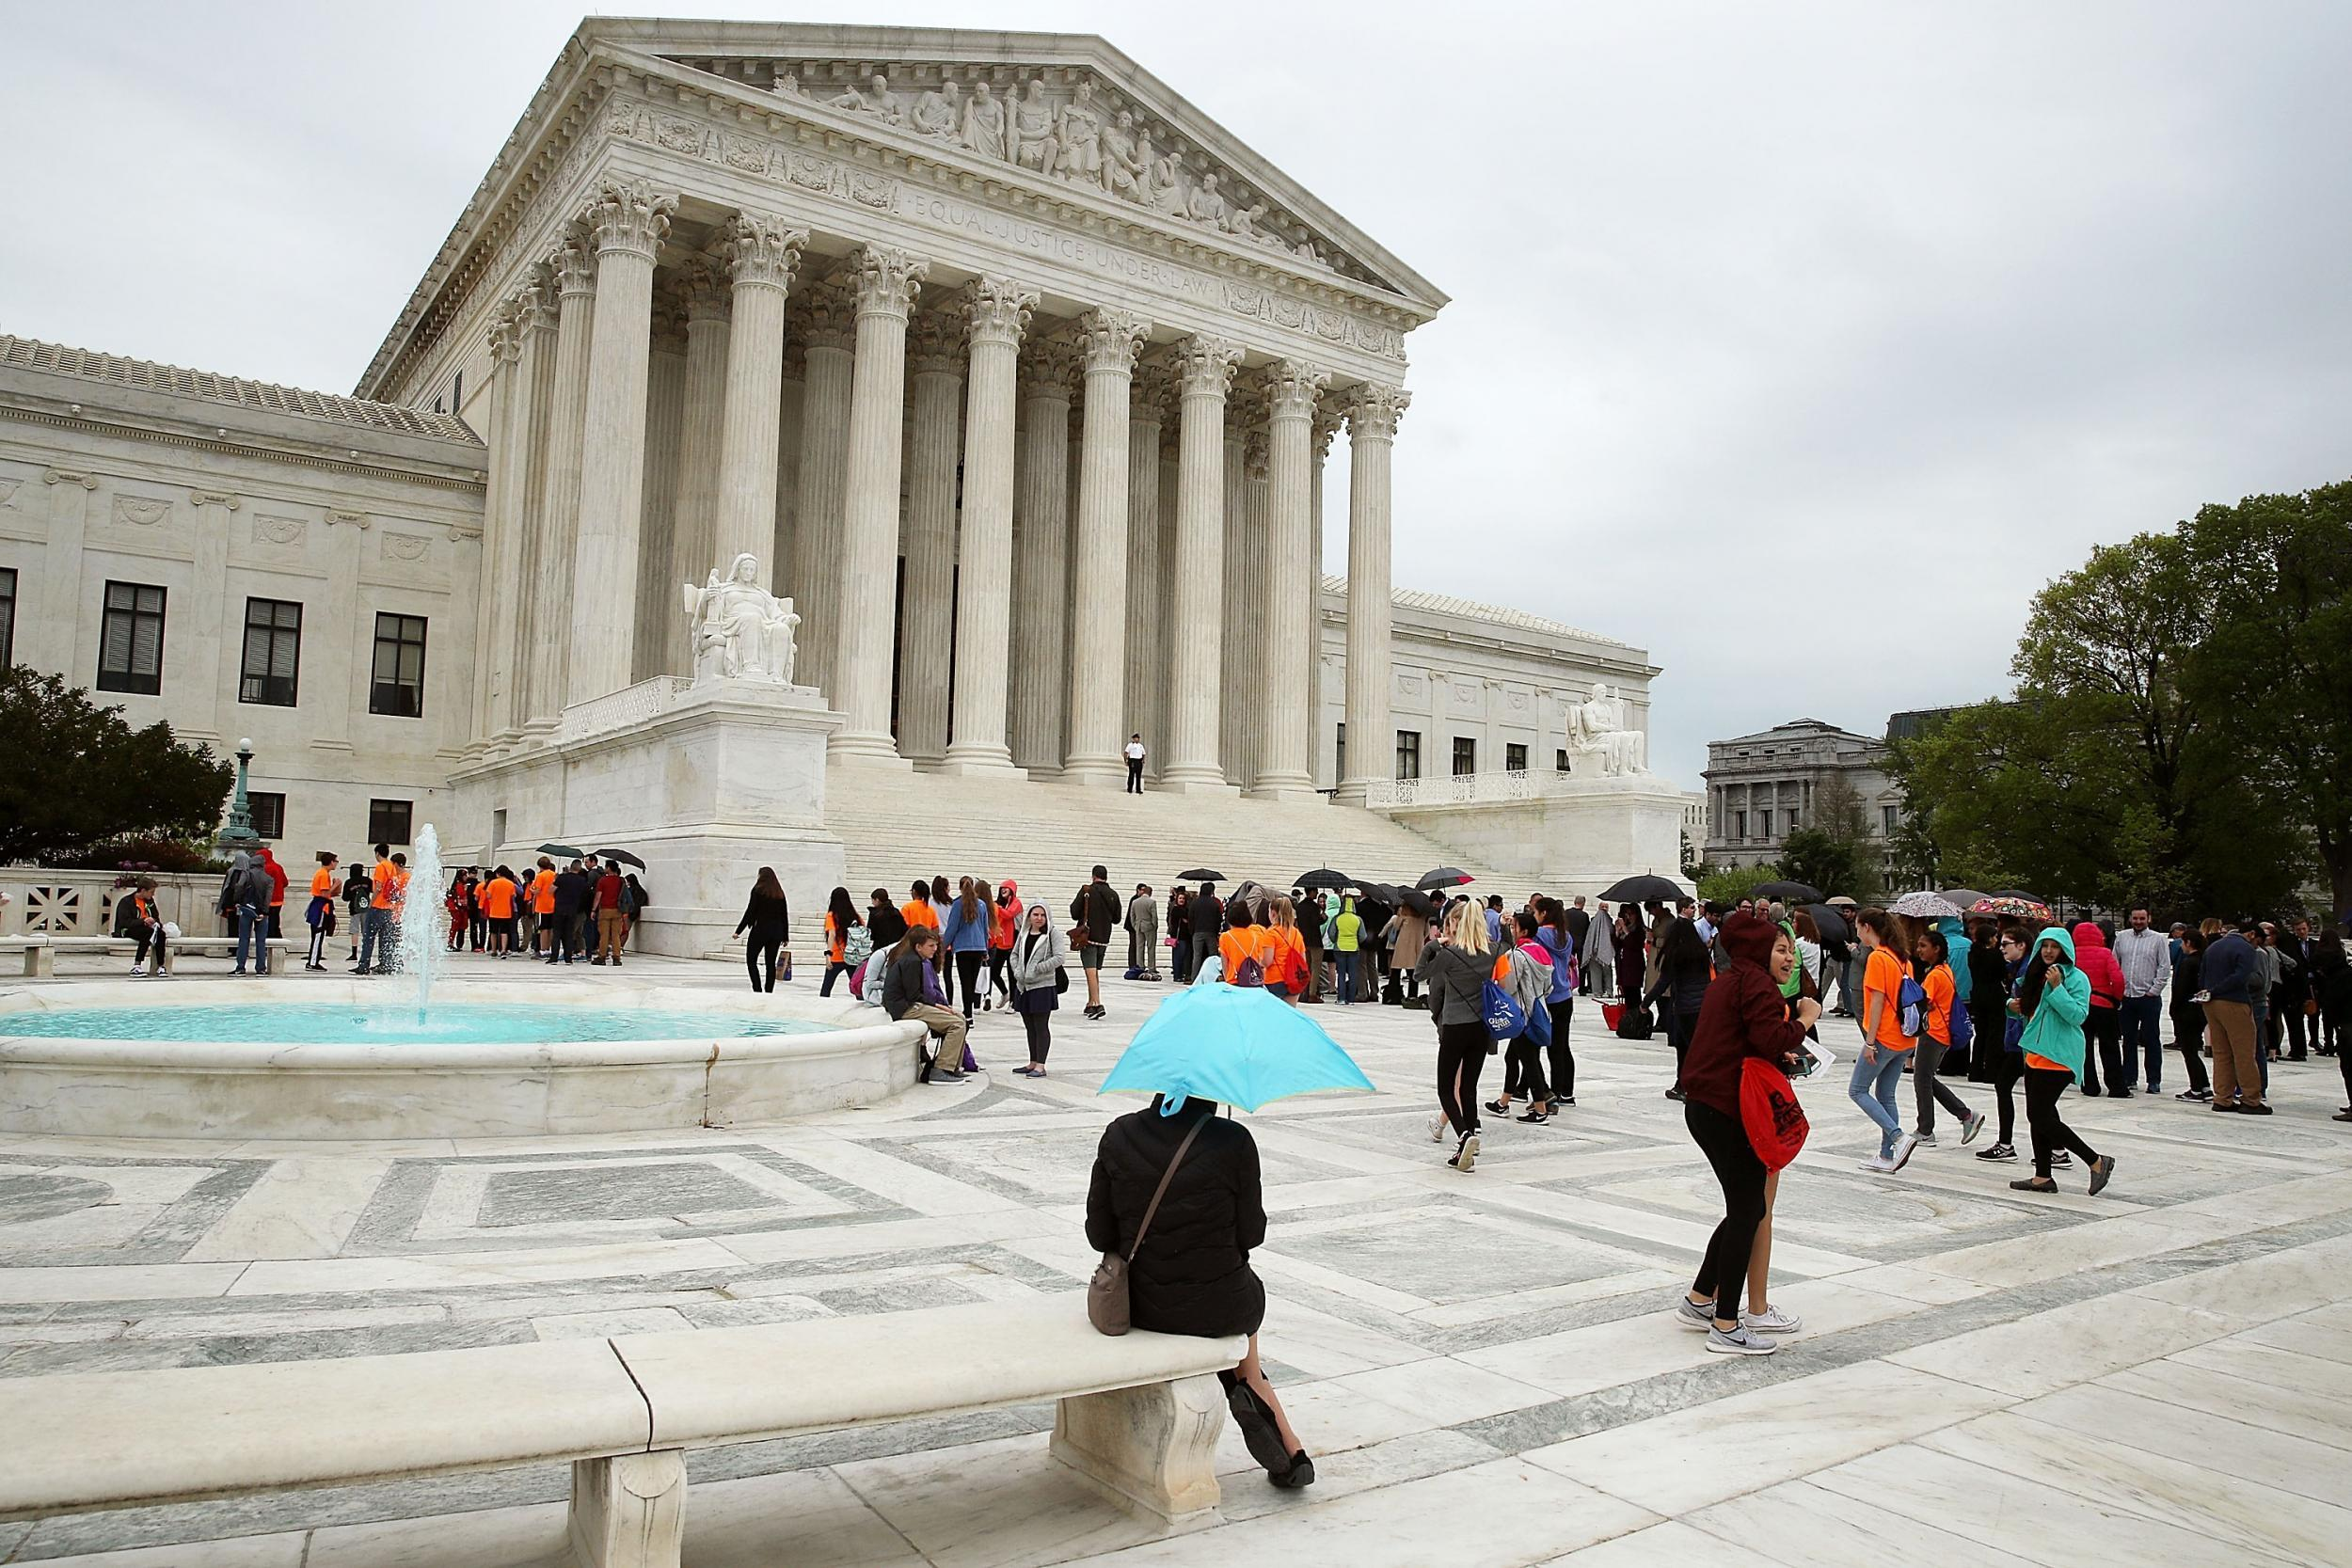 Supreme Court thwarts voter ID law that targeted black voters with 'almost surgical precision'